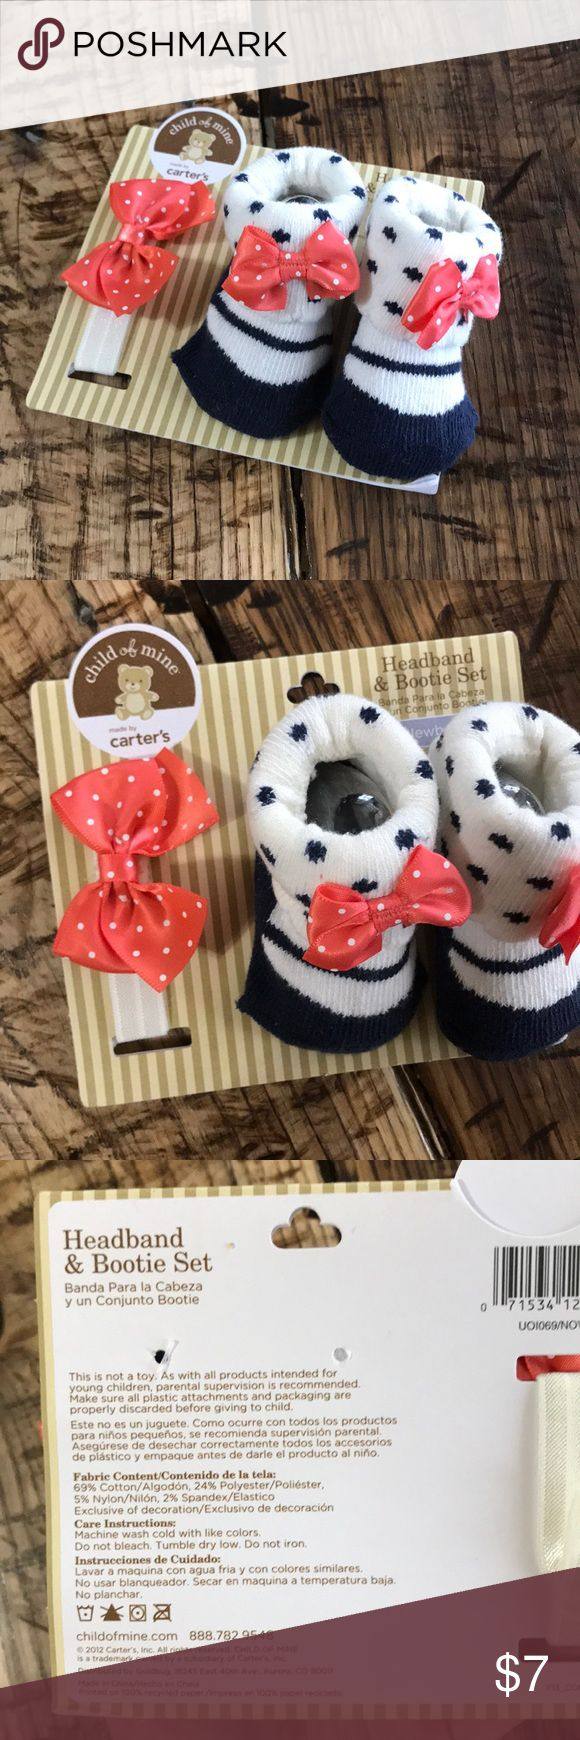 💕 Child of Mine Headband and Bootie Set 💕 💕 Newborn Child of Mine Headband and Bootie Set Blue and White Sock Booties with Pink / Orange and White bows. White and Pink / Orange Headband. NWT!  💌 Ships to you within 24 Hours! 🚫Smoke FREE❗️ Carter's Accessories Socks & Tights